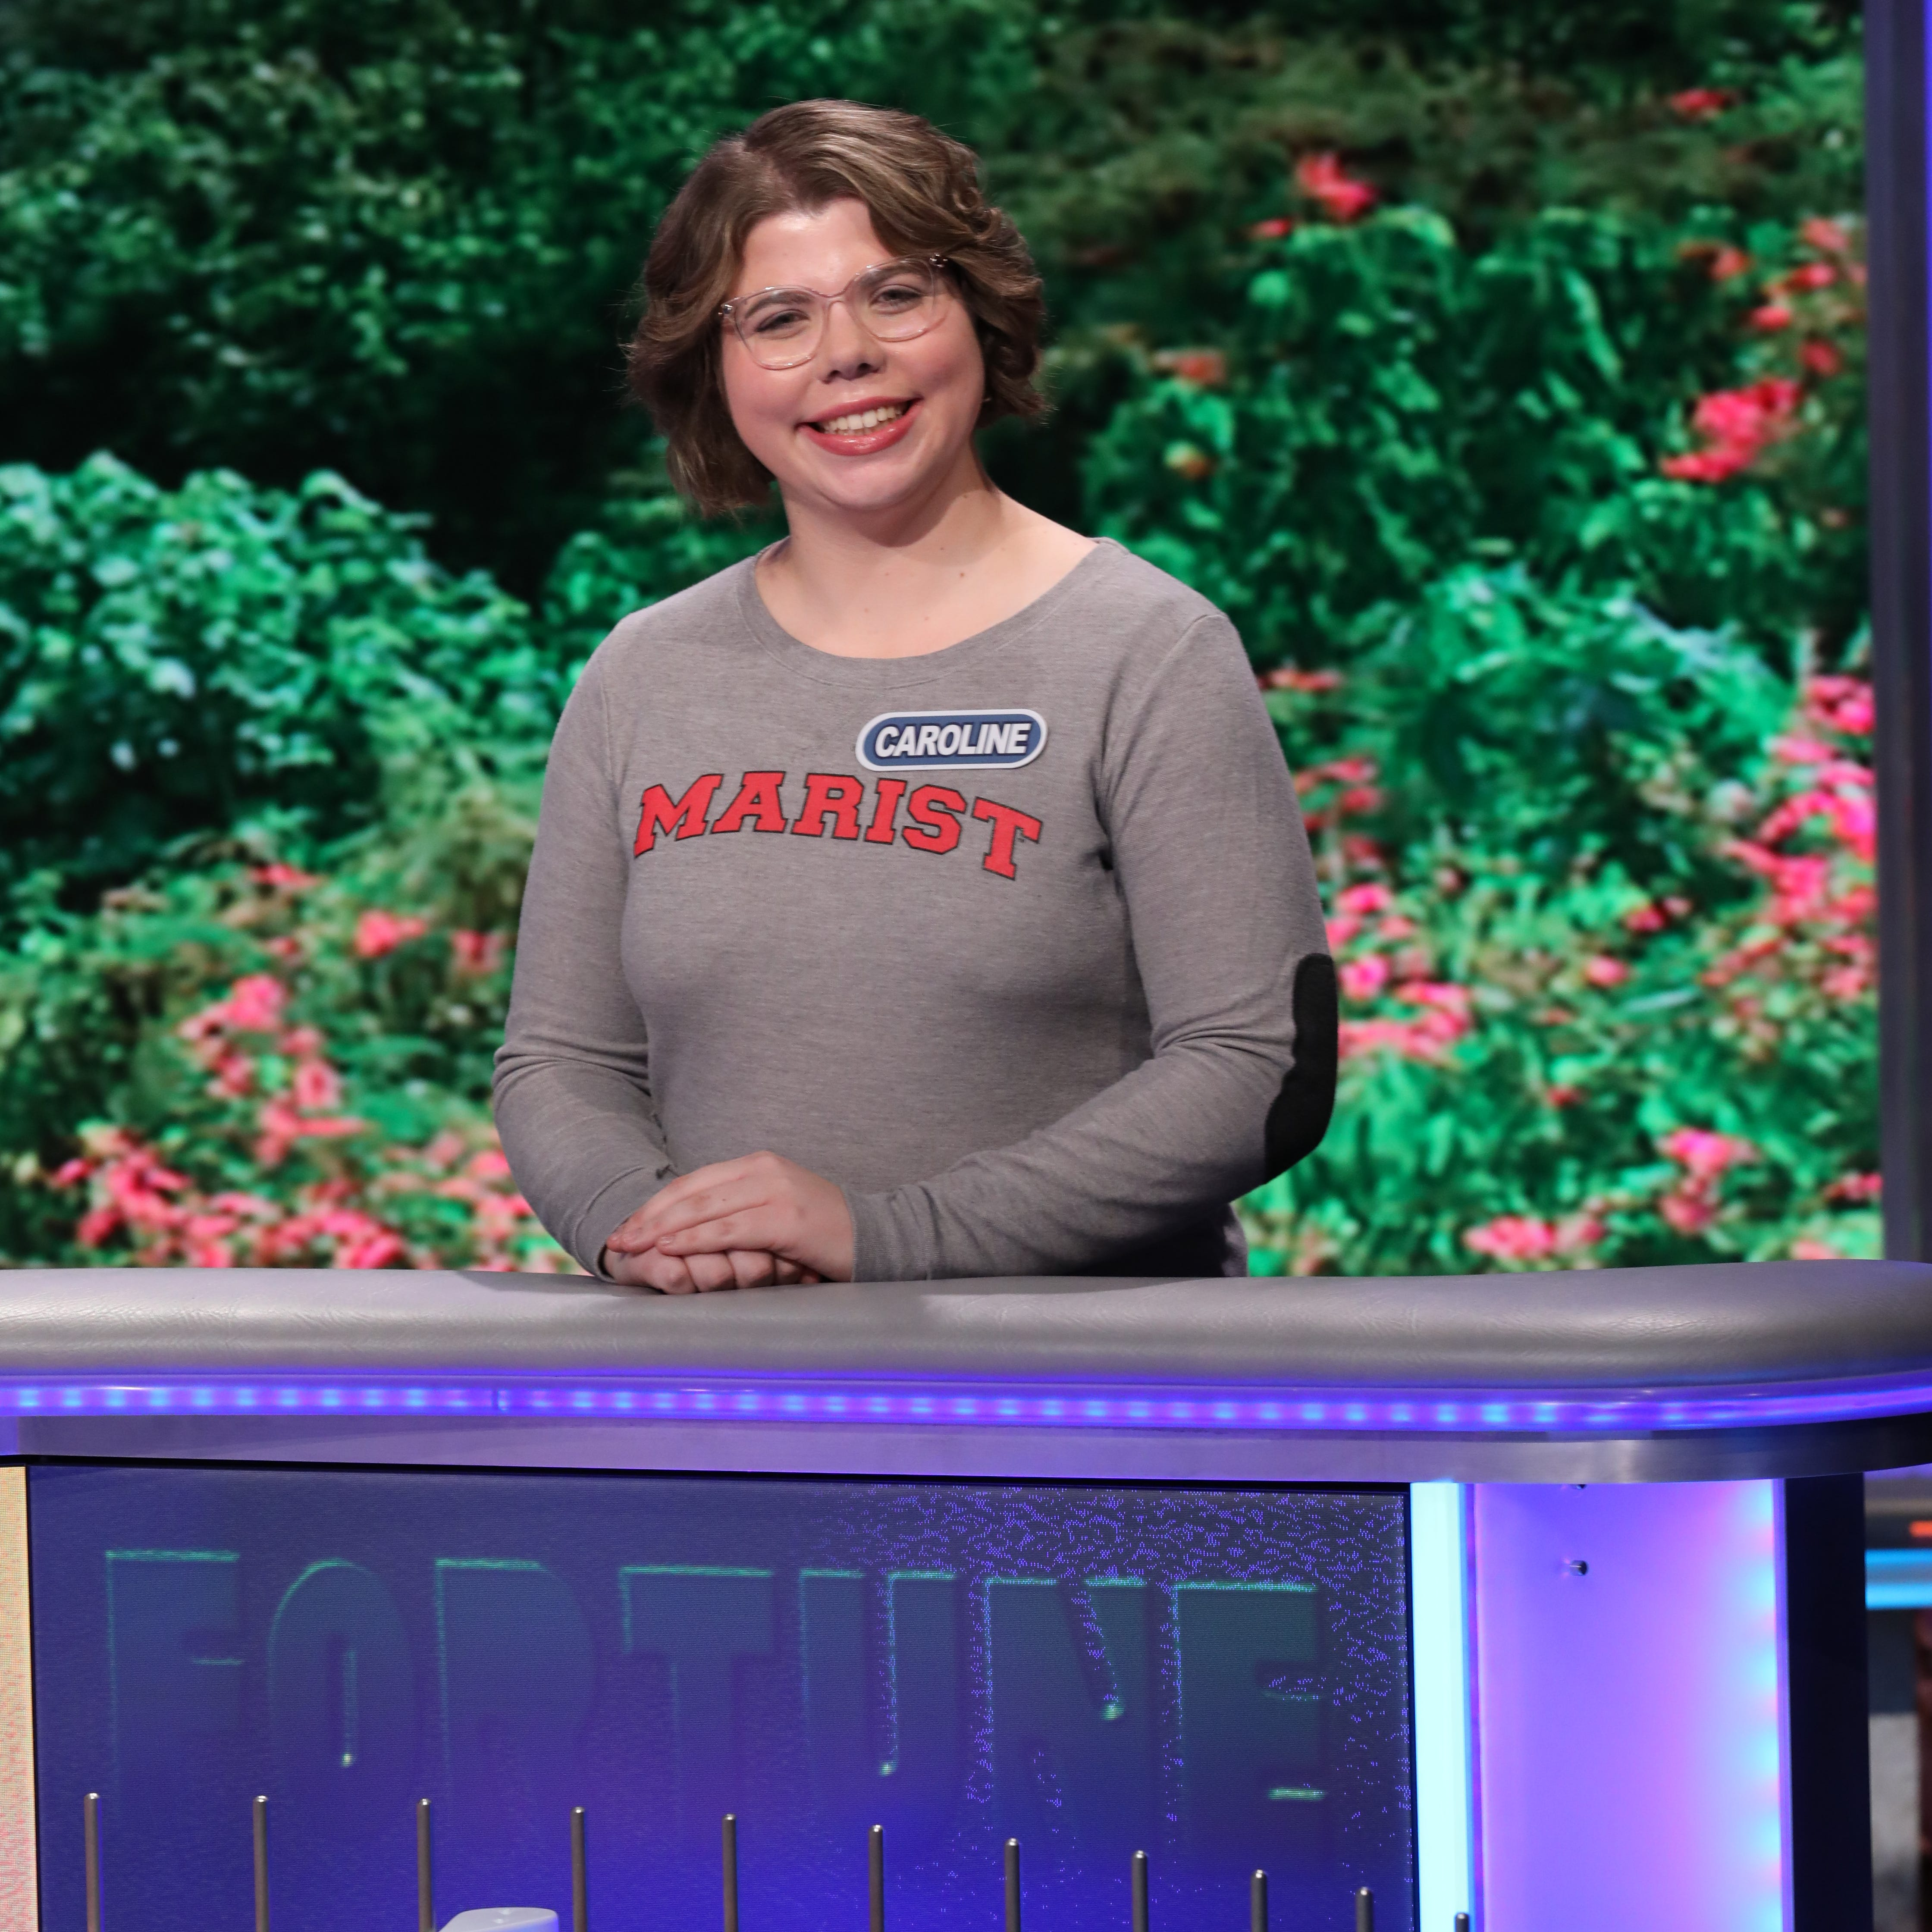 Marist College student takes a spin at 'Wheel of Fortune' Friday